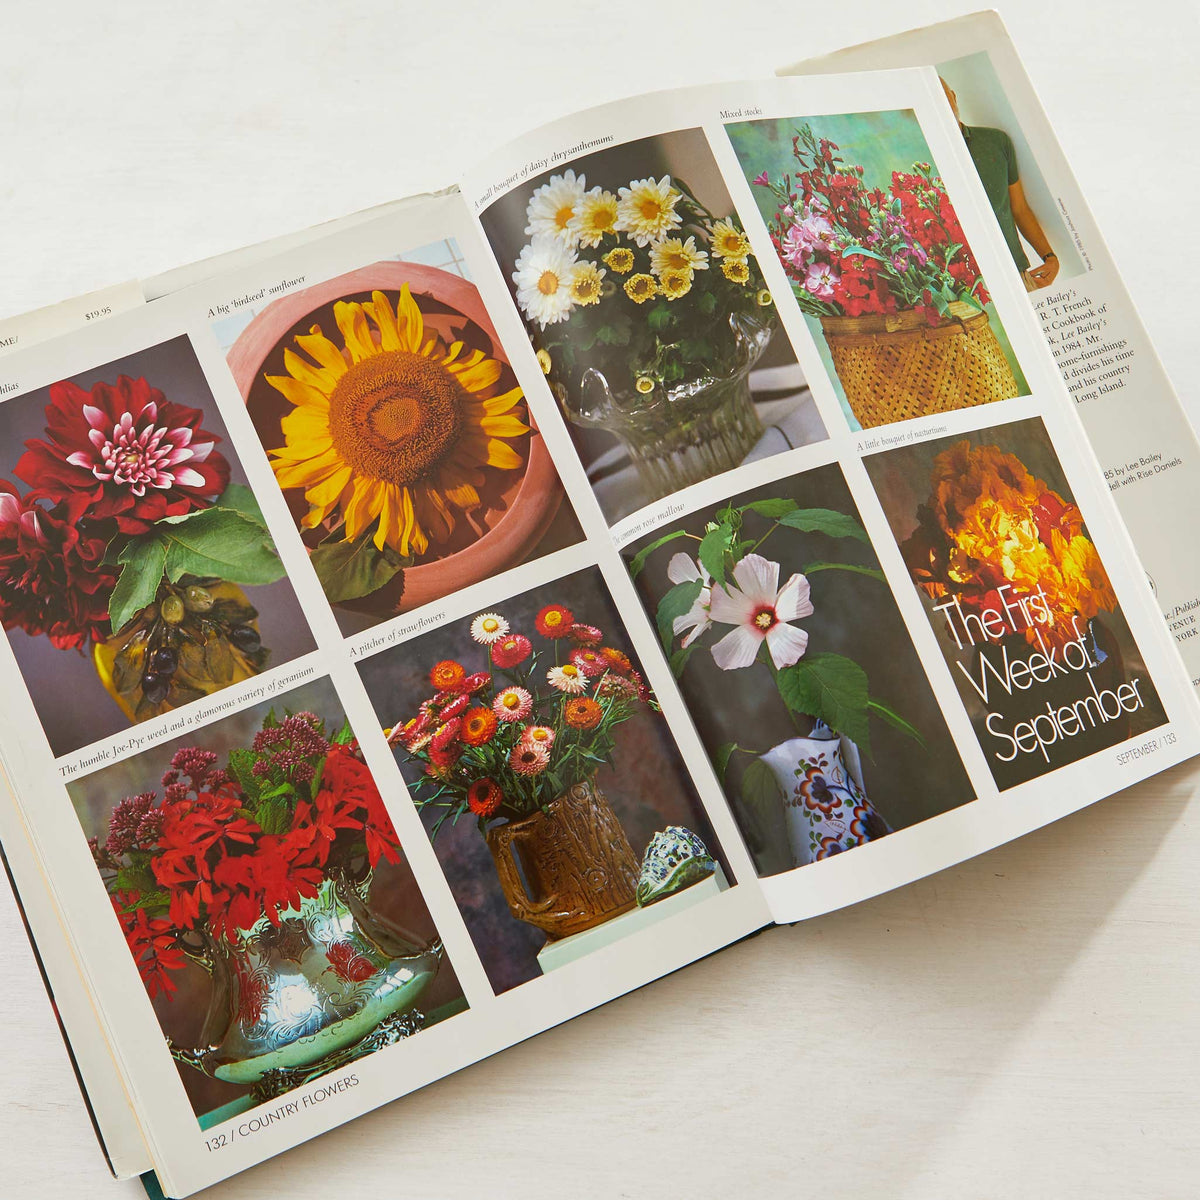 Lee Bailey's County Flowers. Best flower gardening bible. Covers perennial plants, flower beds, flower bulbs & flower planters. Best gardening guide.